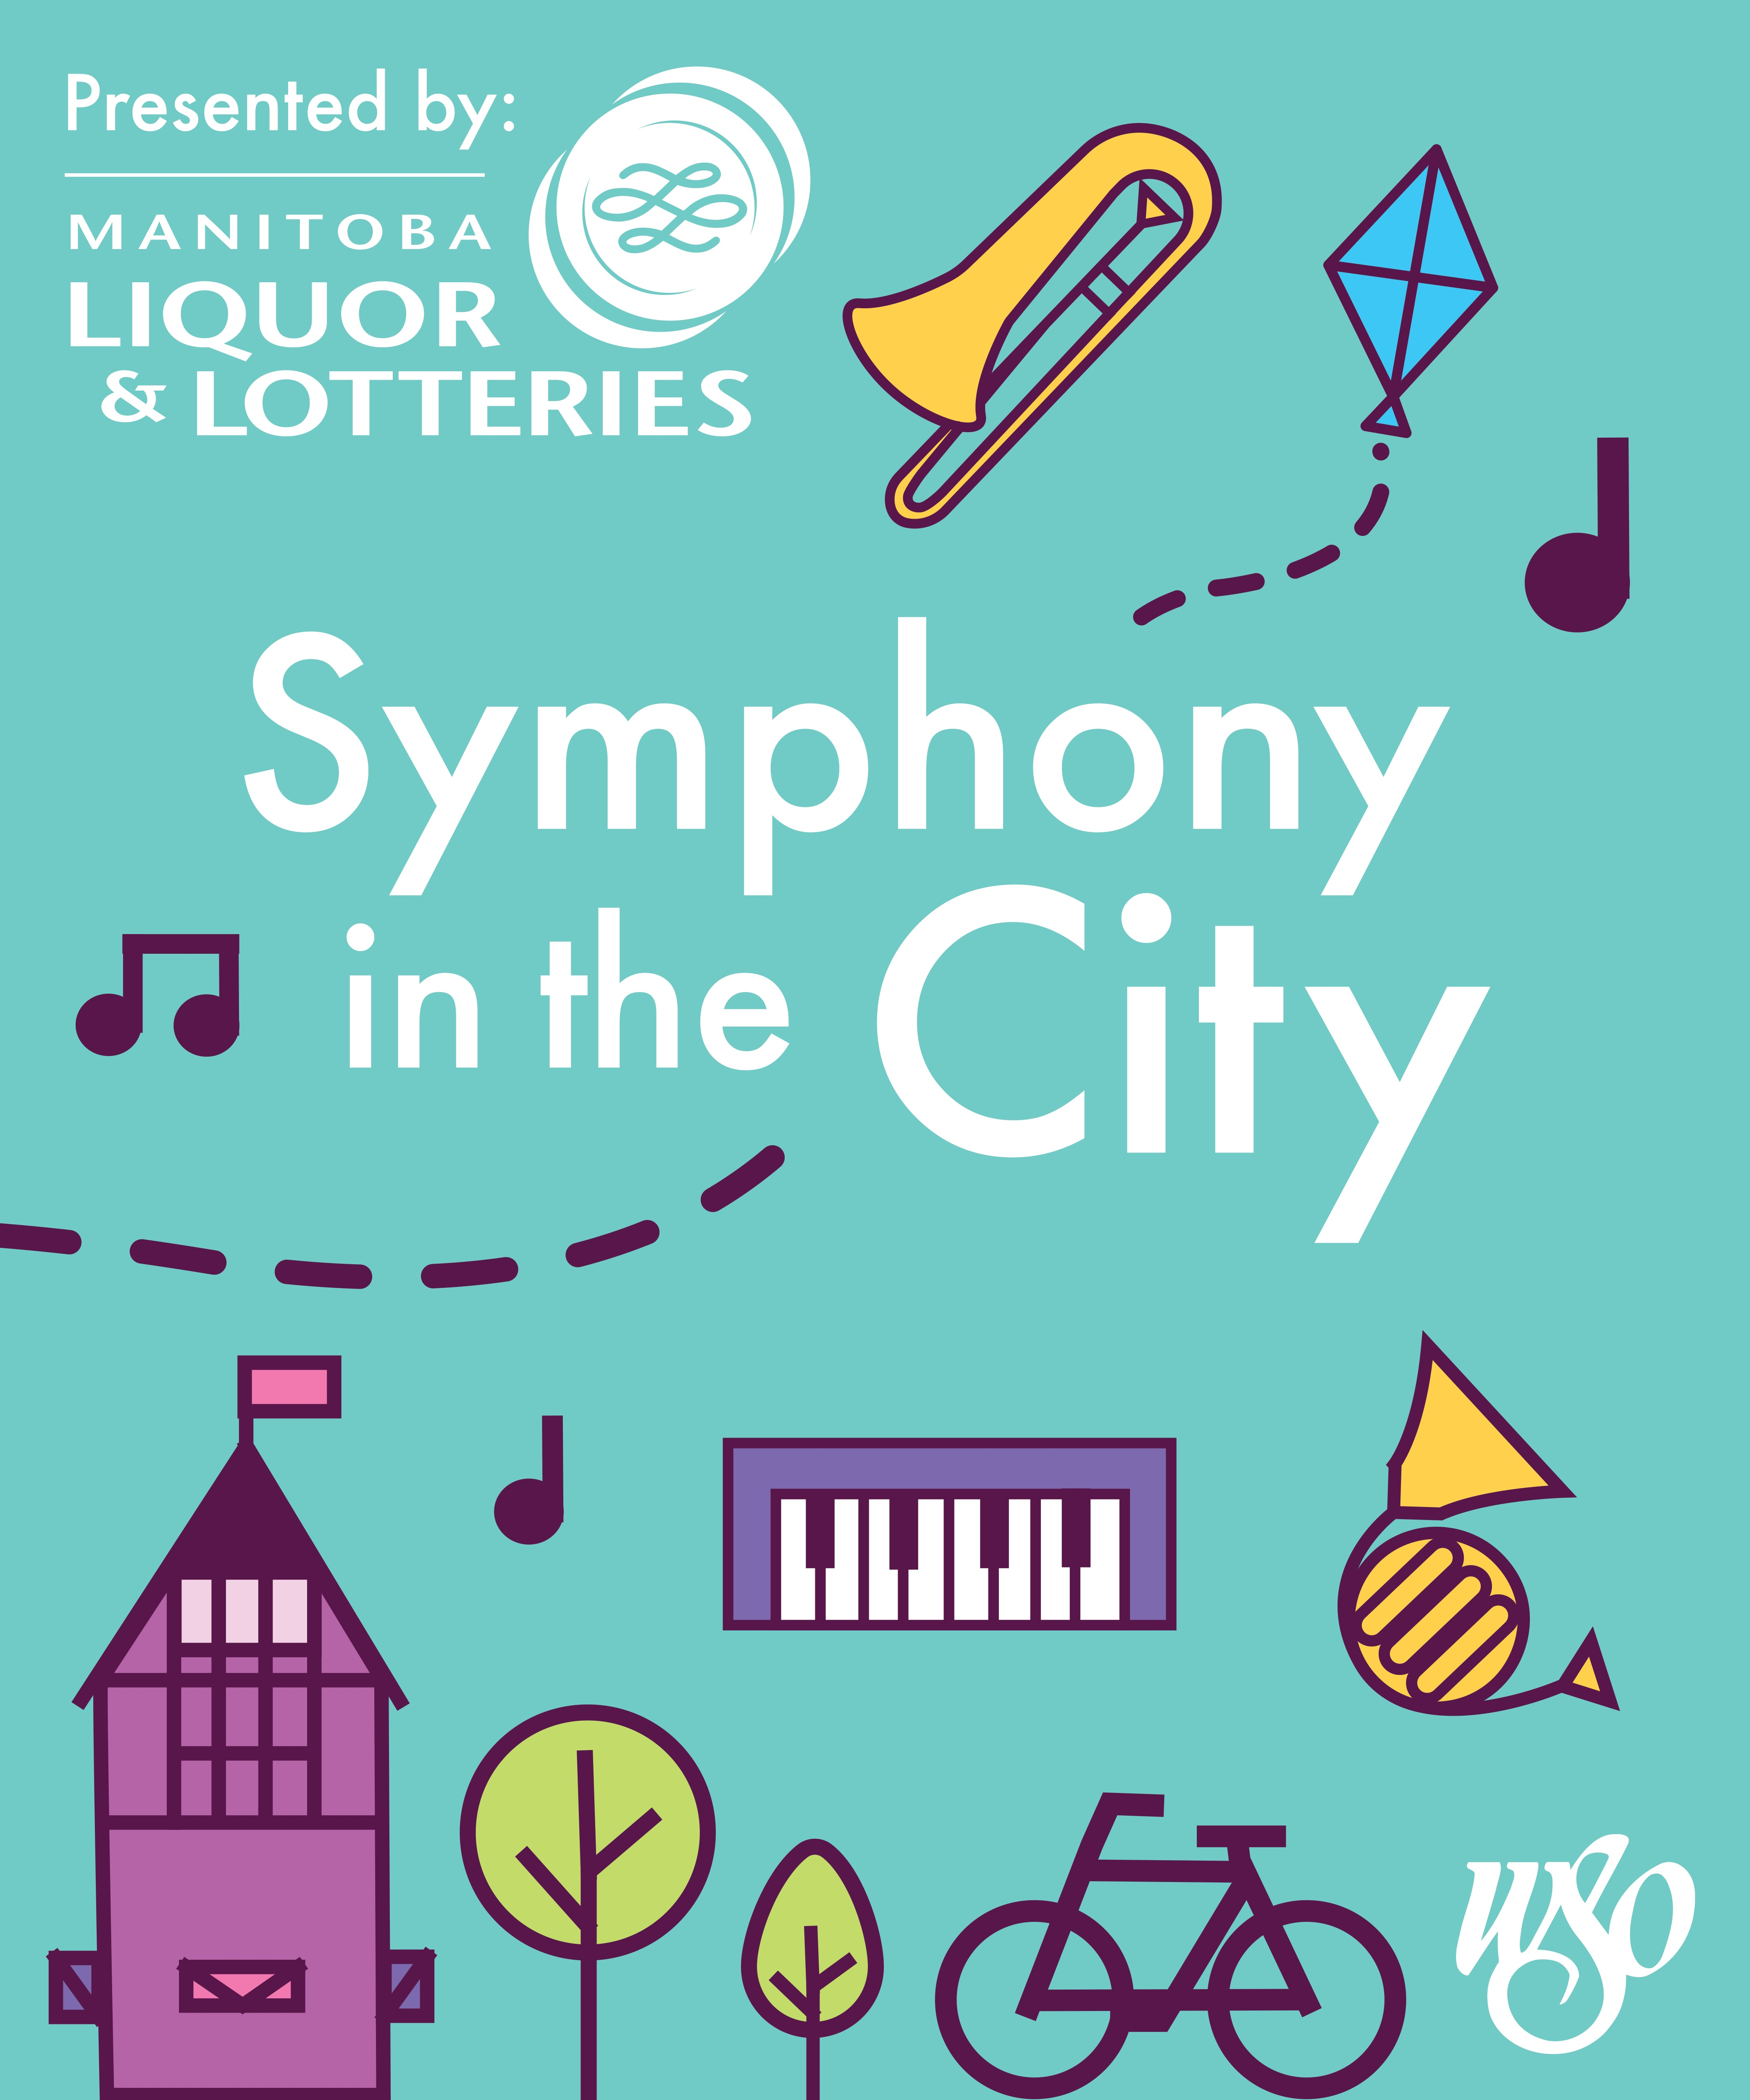 Symphony in the City.jpg (1.07 MB)